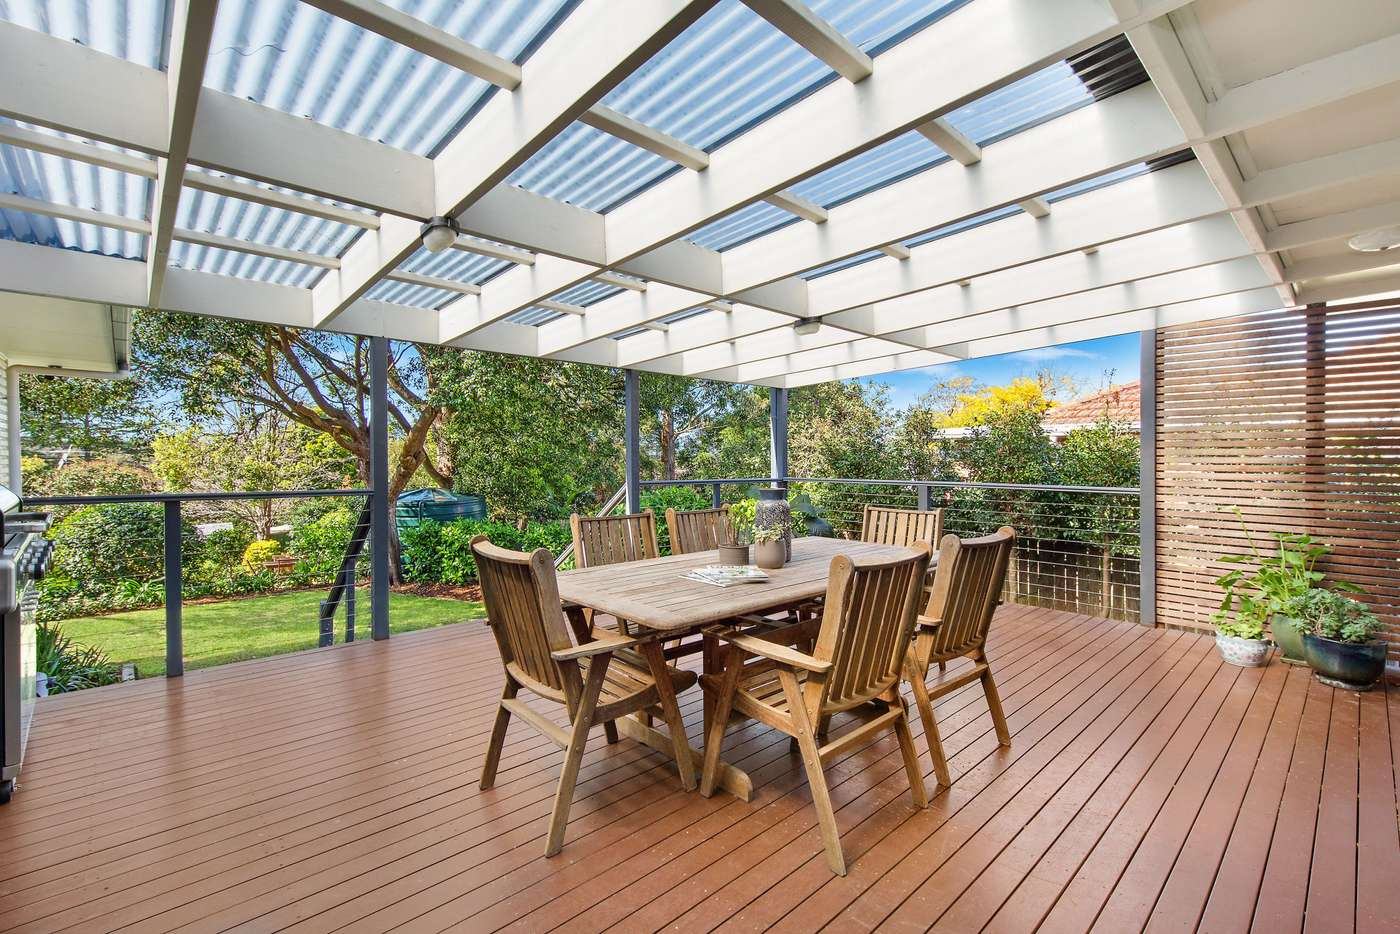 Sixth view of Homely house listing, 28 Wyuna Road, West Pymble NSW 2073